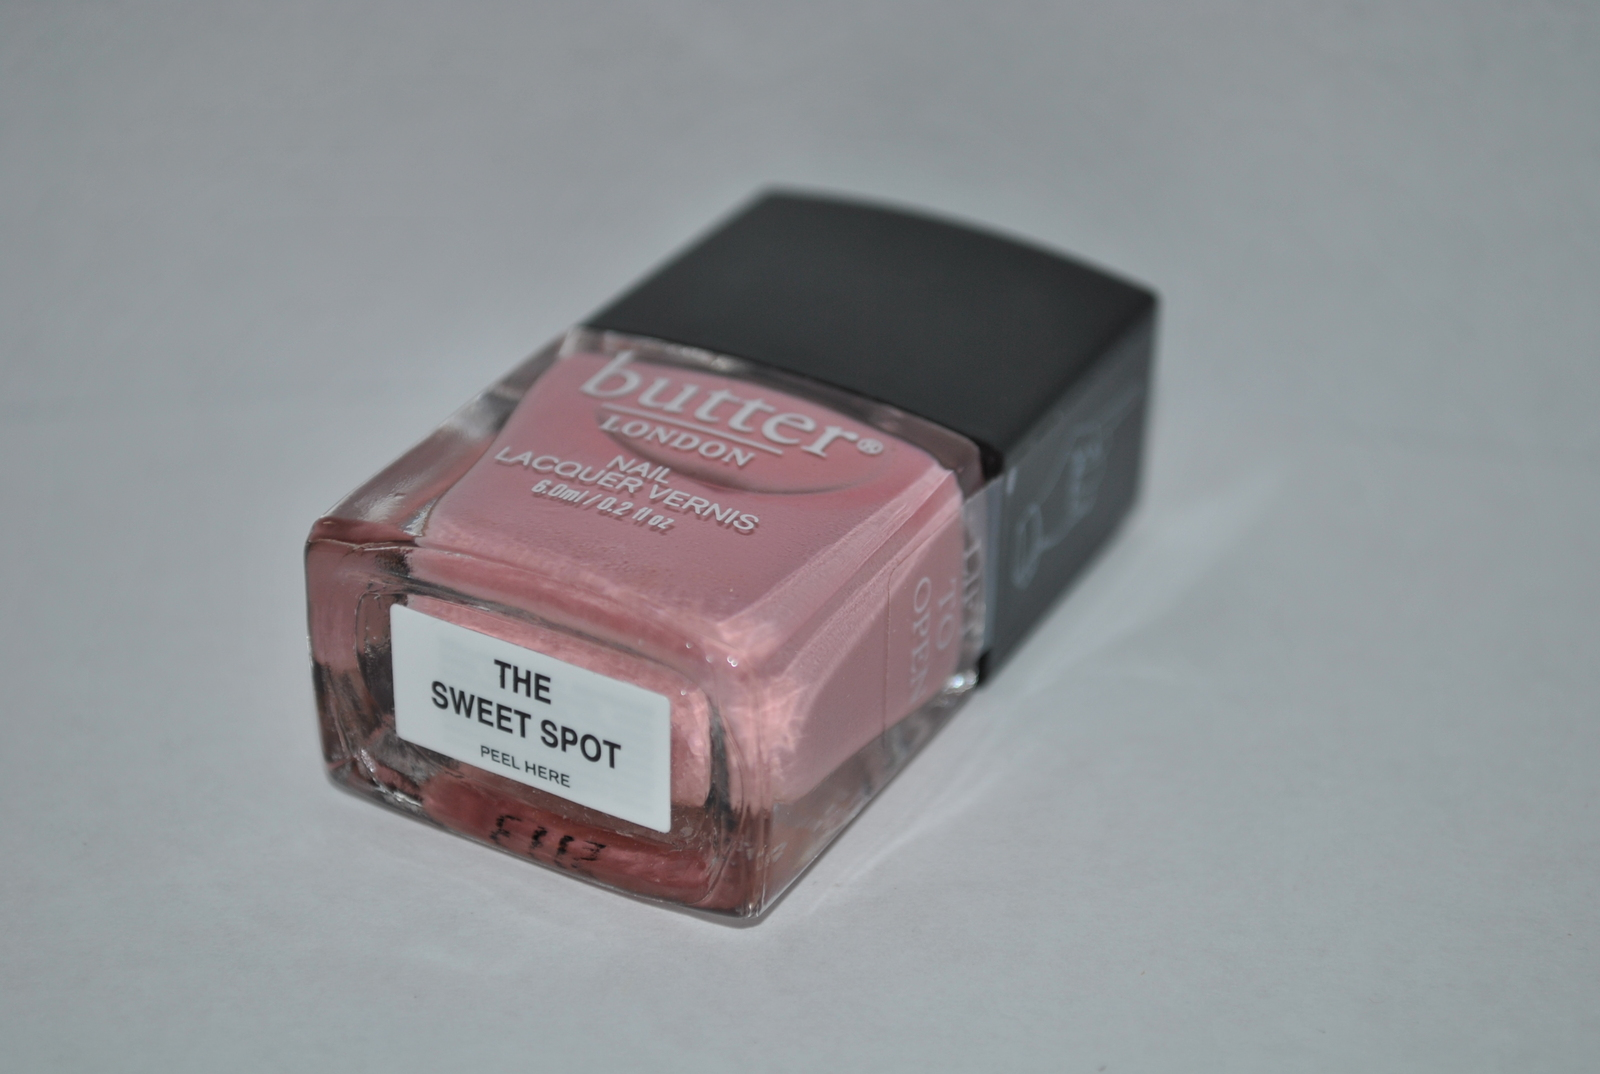 Butter London Nail Lacquer - The Sweet Spot 0.2 Fl oz / 6 ml